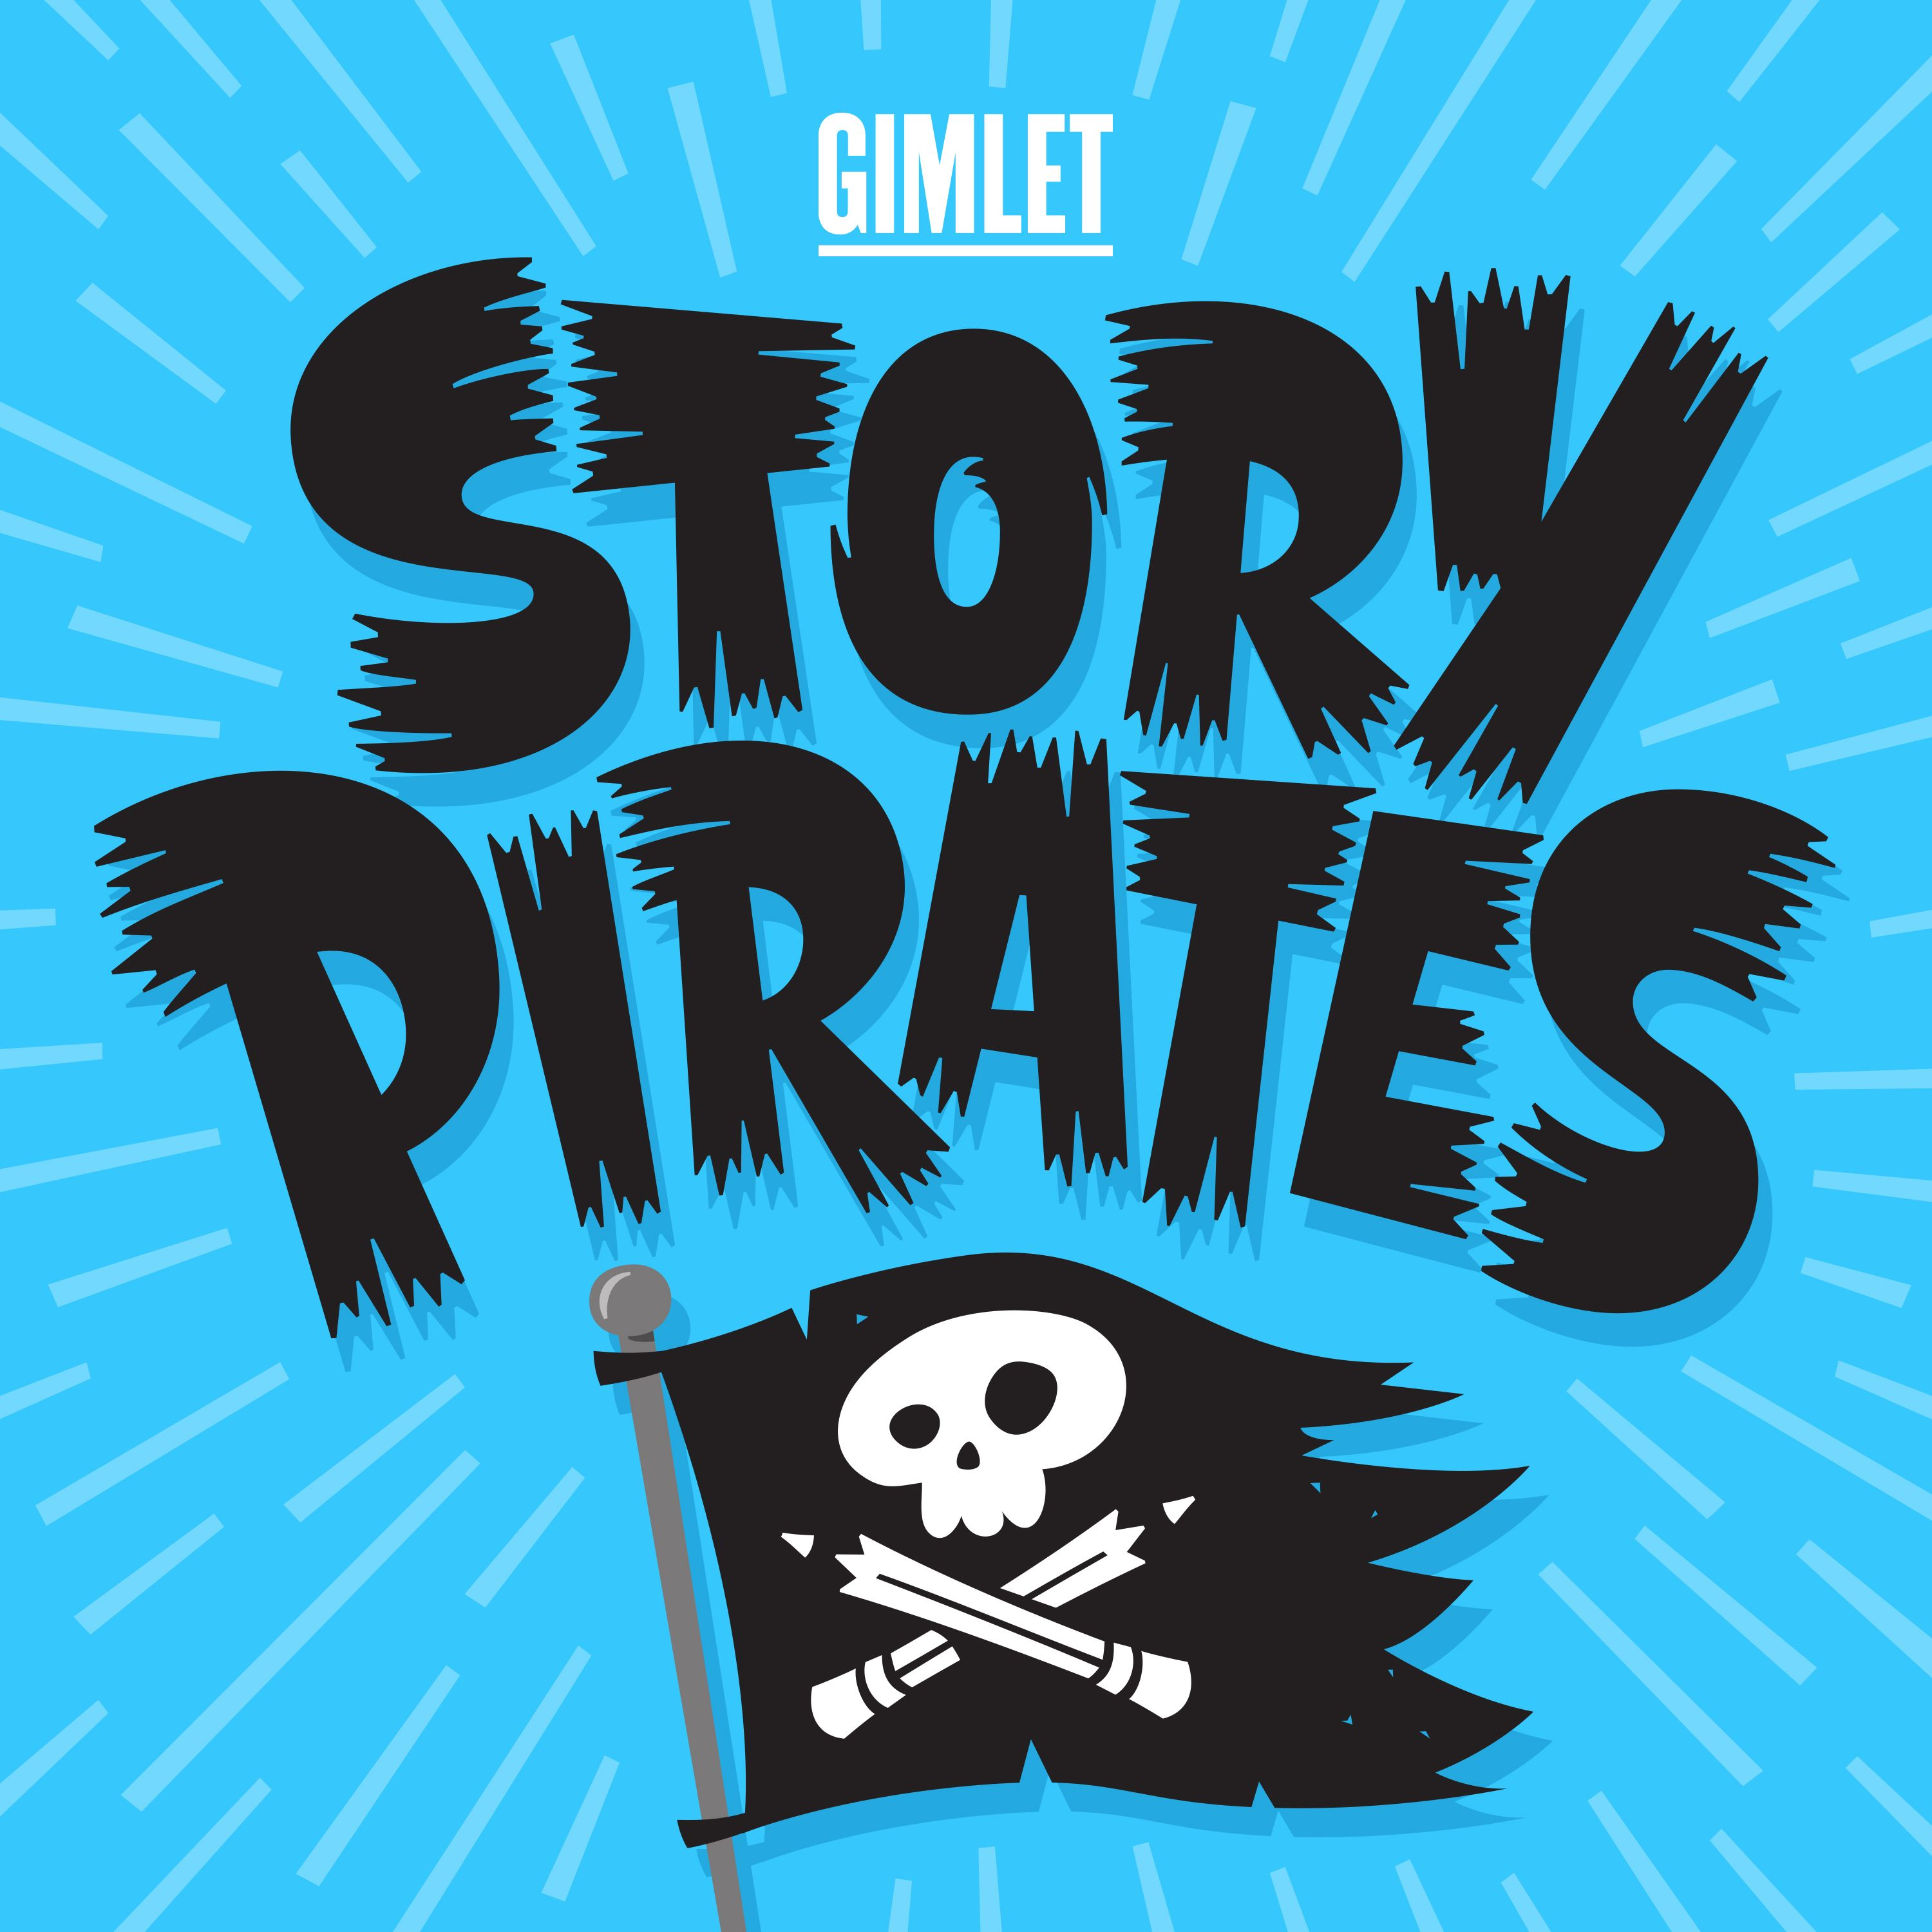 160. What if Story Pirates came into What If World?